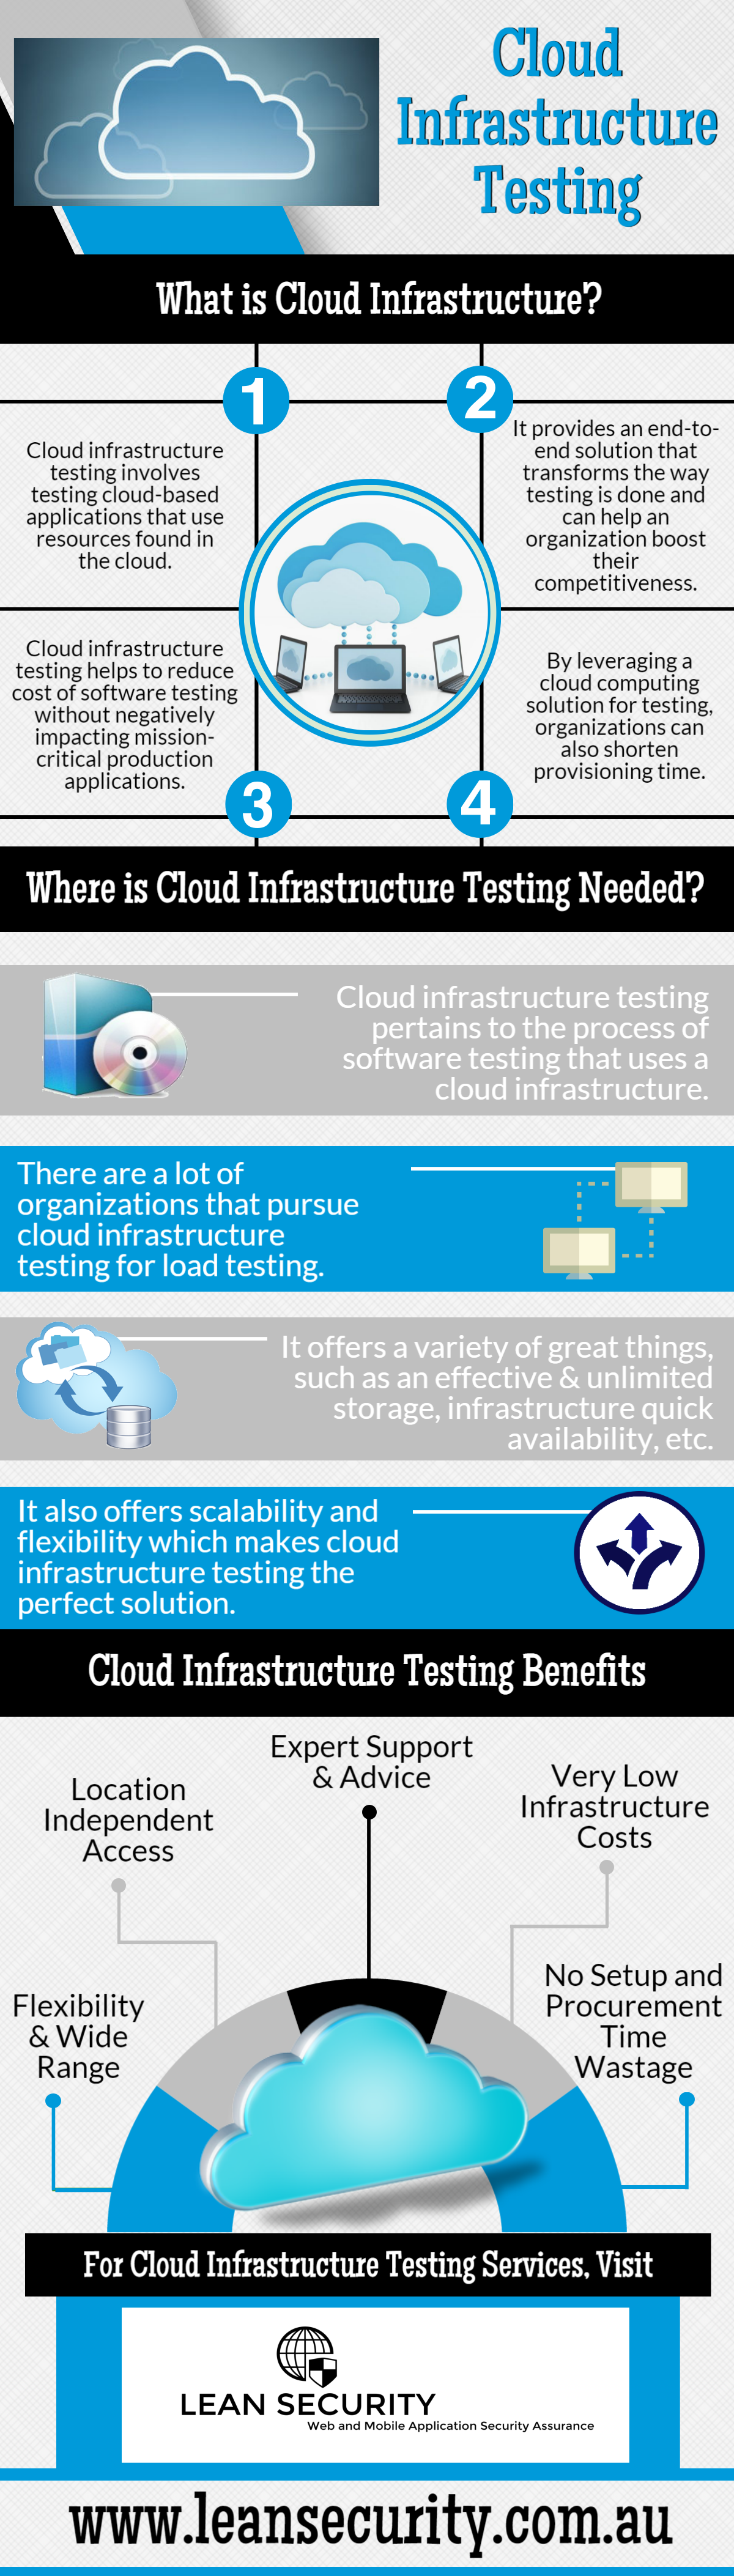 Cloud Infrastructure Testing